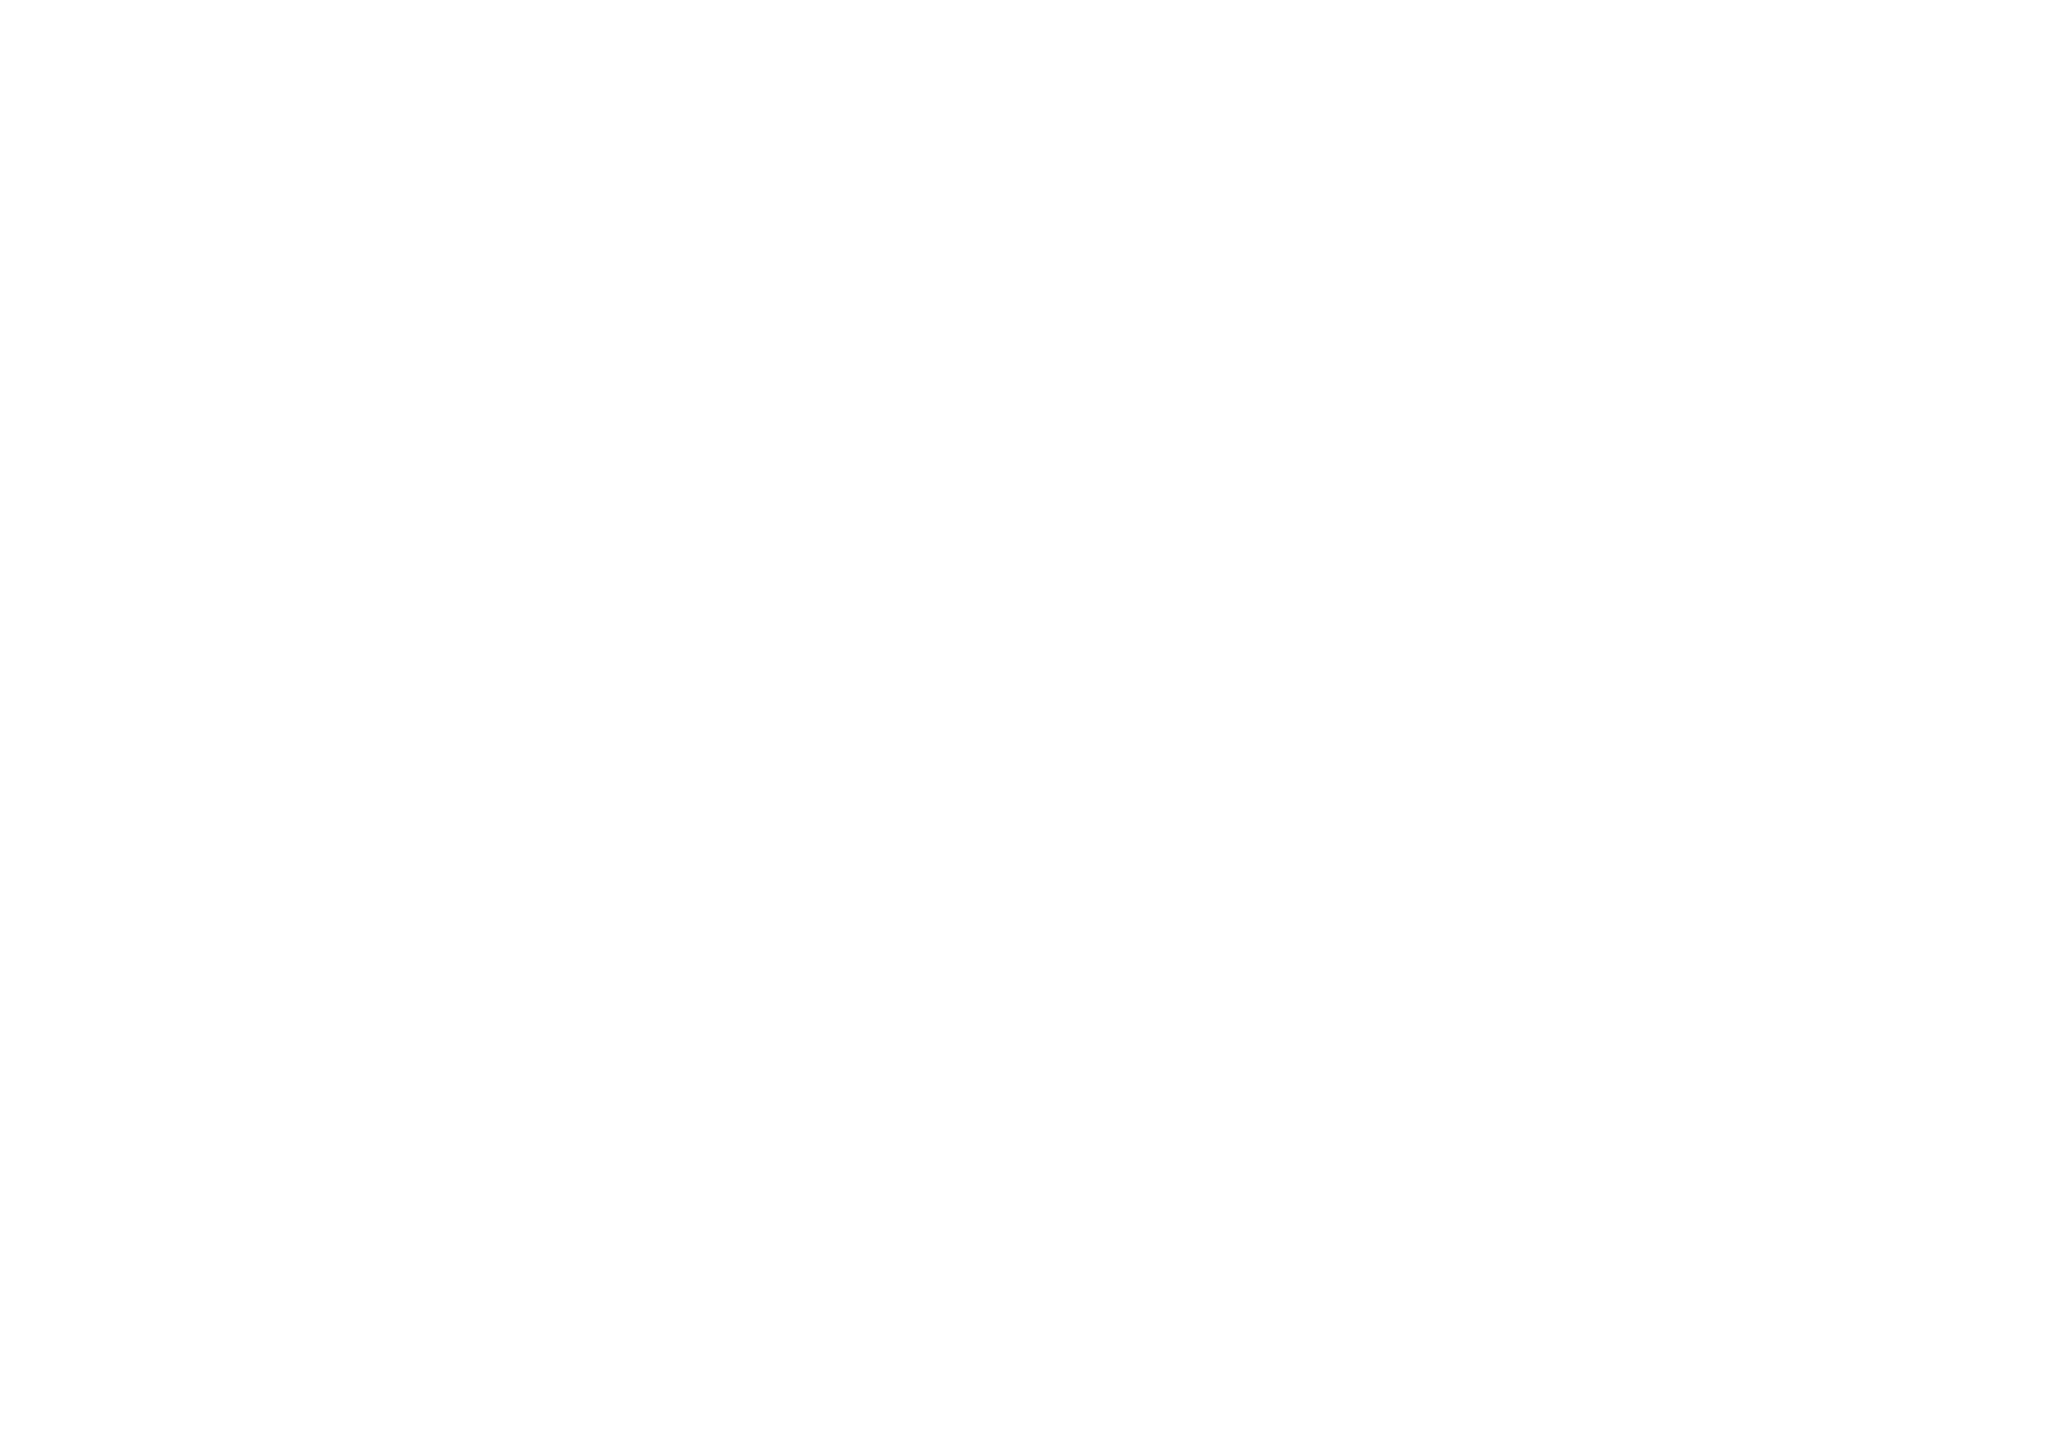 Family that matters